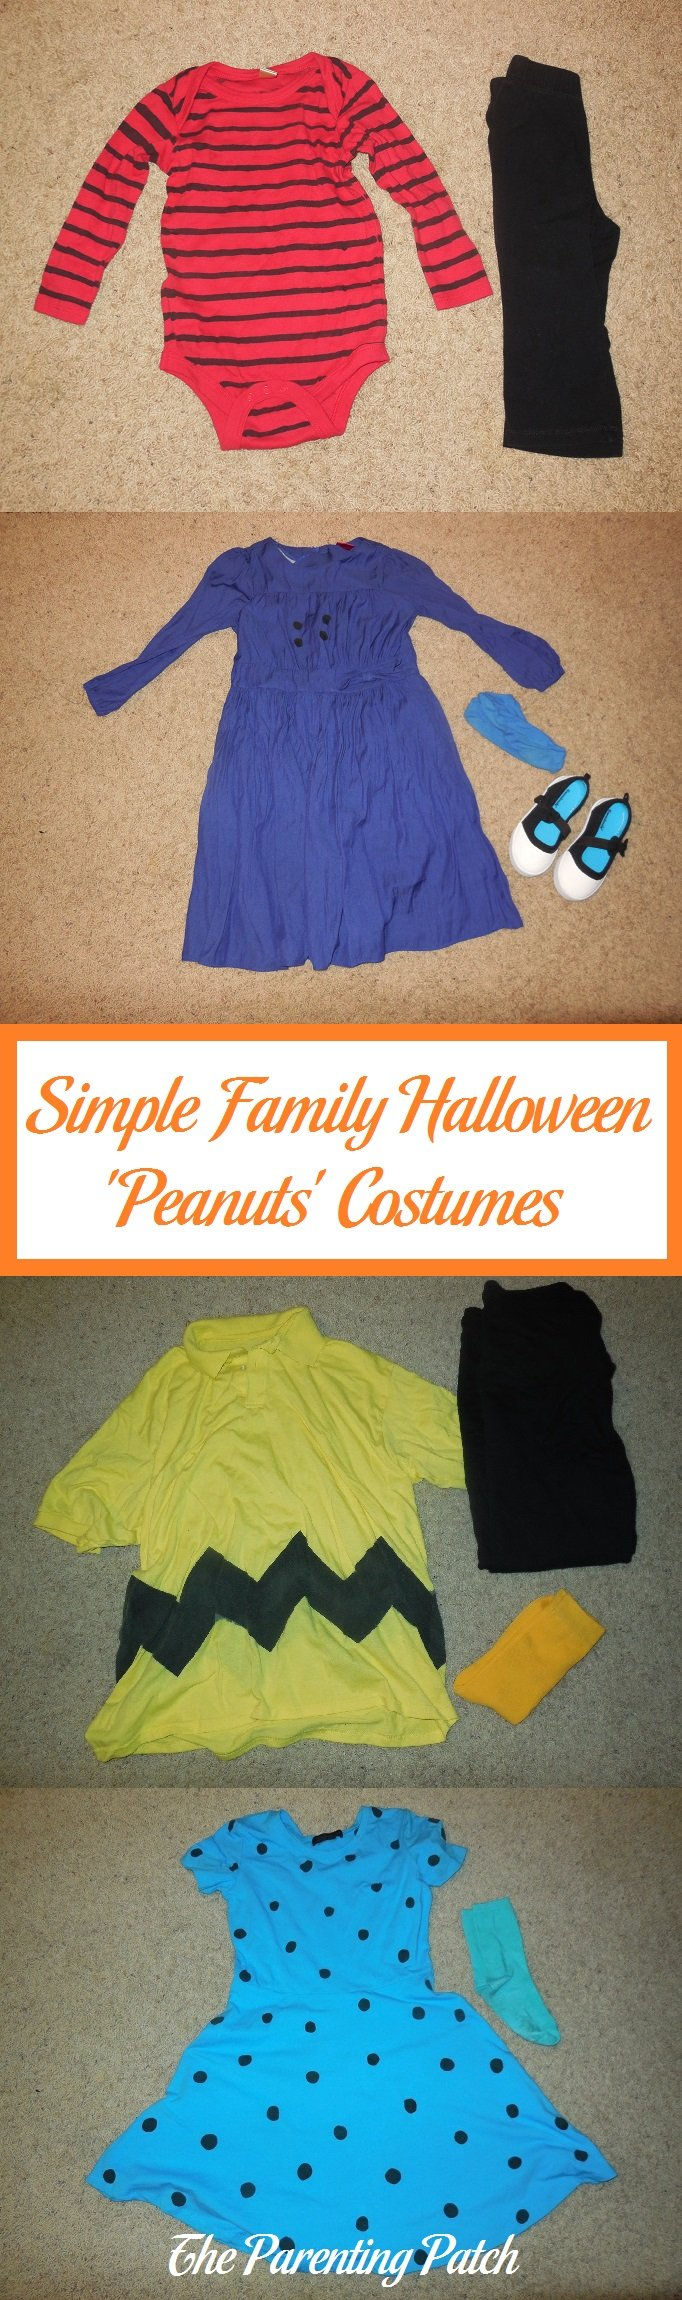 simple family halloween 'peanuts' costumes | parenting patch